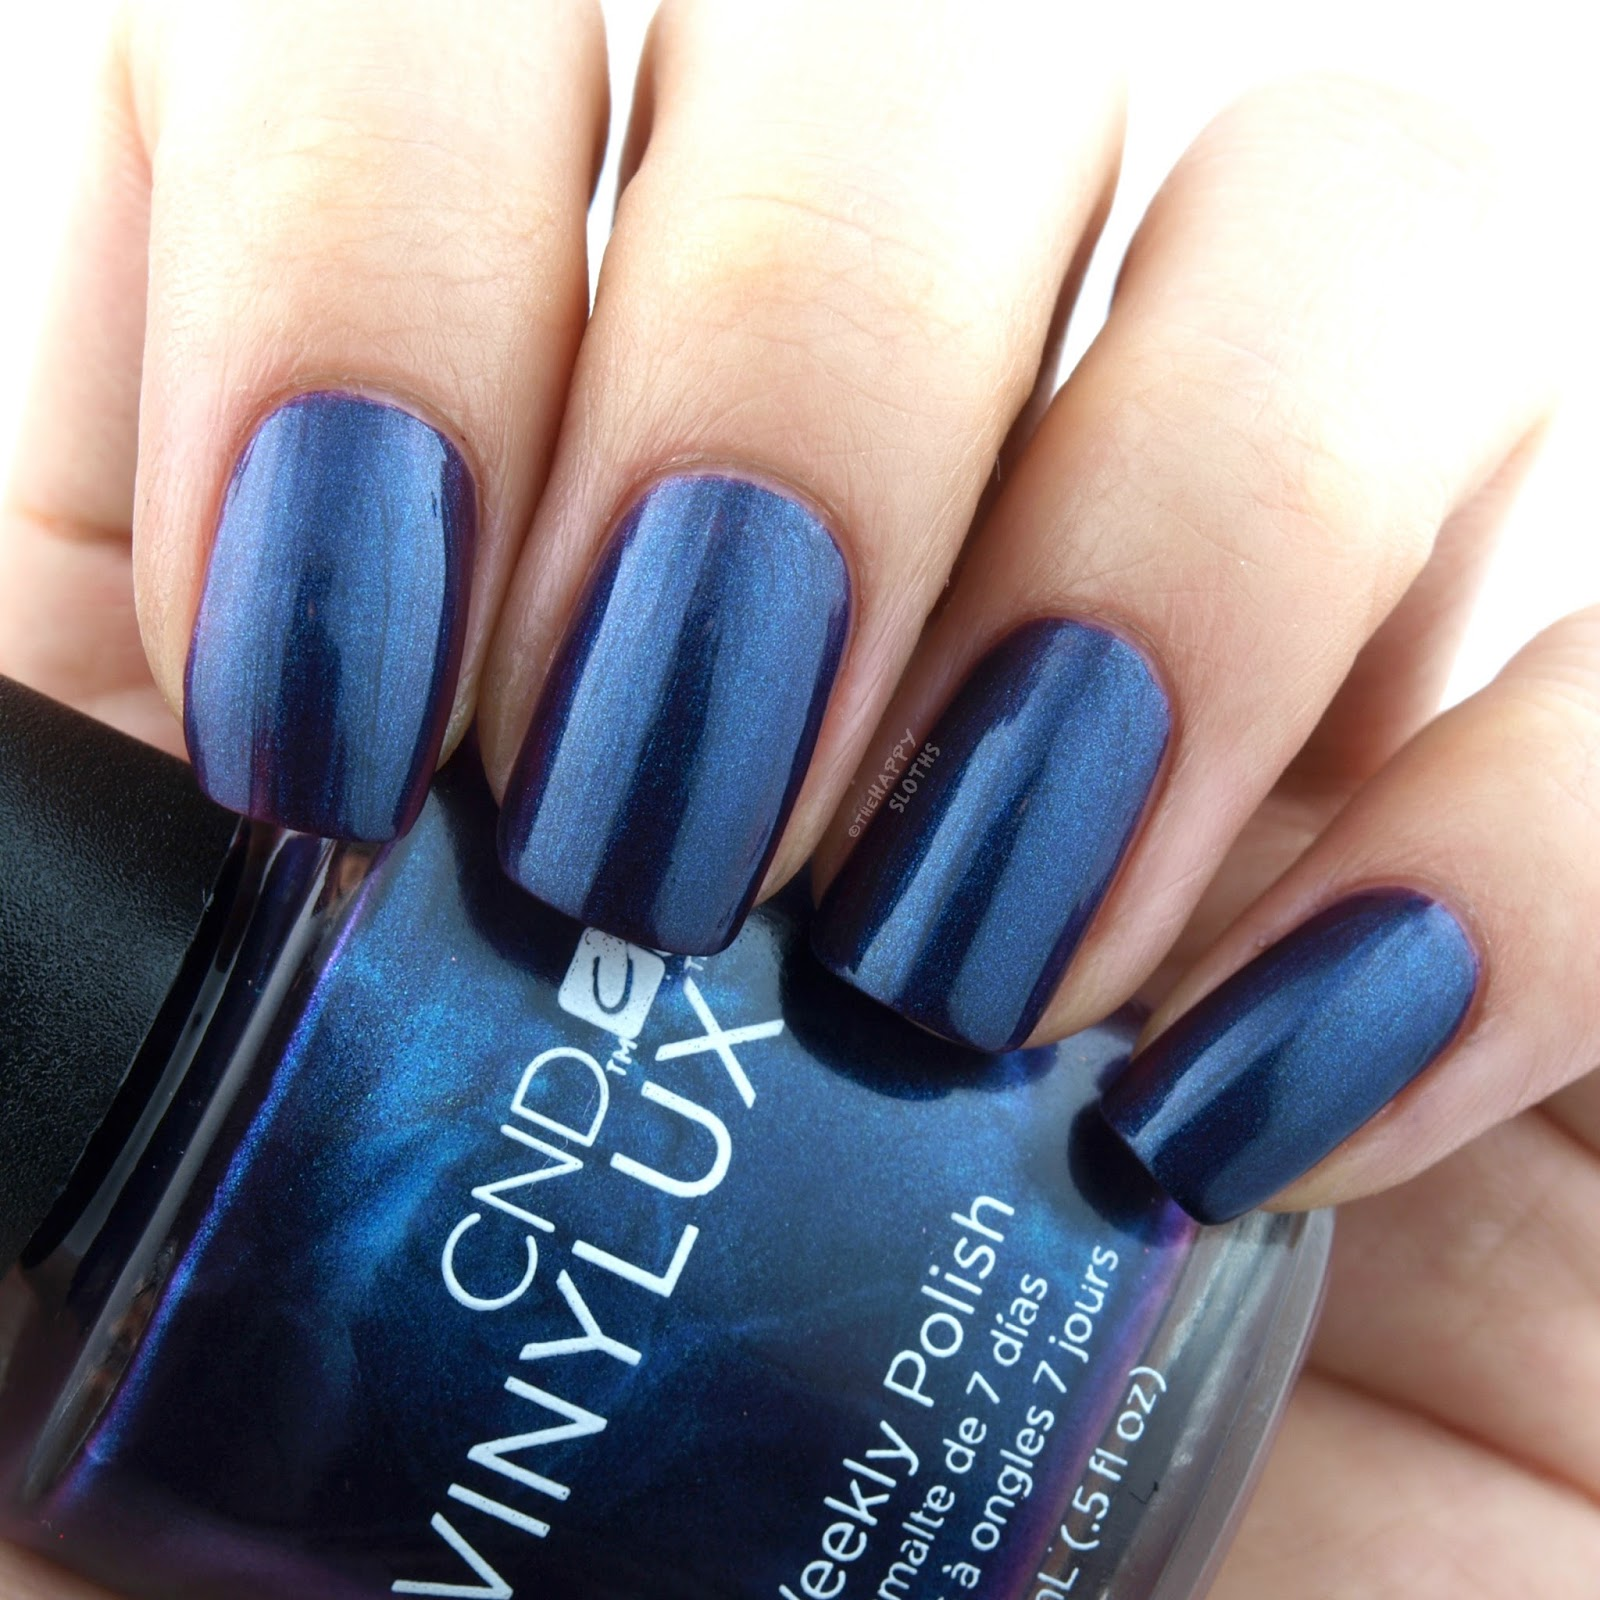 CND Fall 2017 Nightspell Collection | Eternal Midnight: Review and Swatches